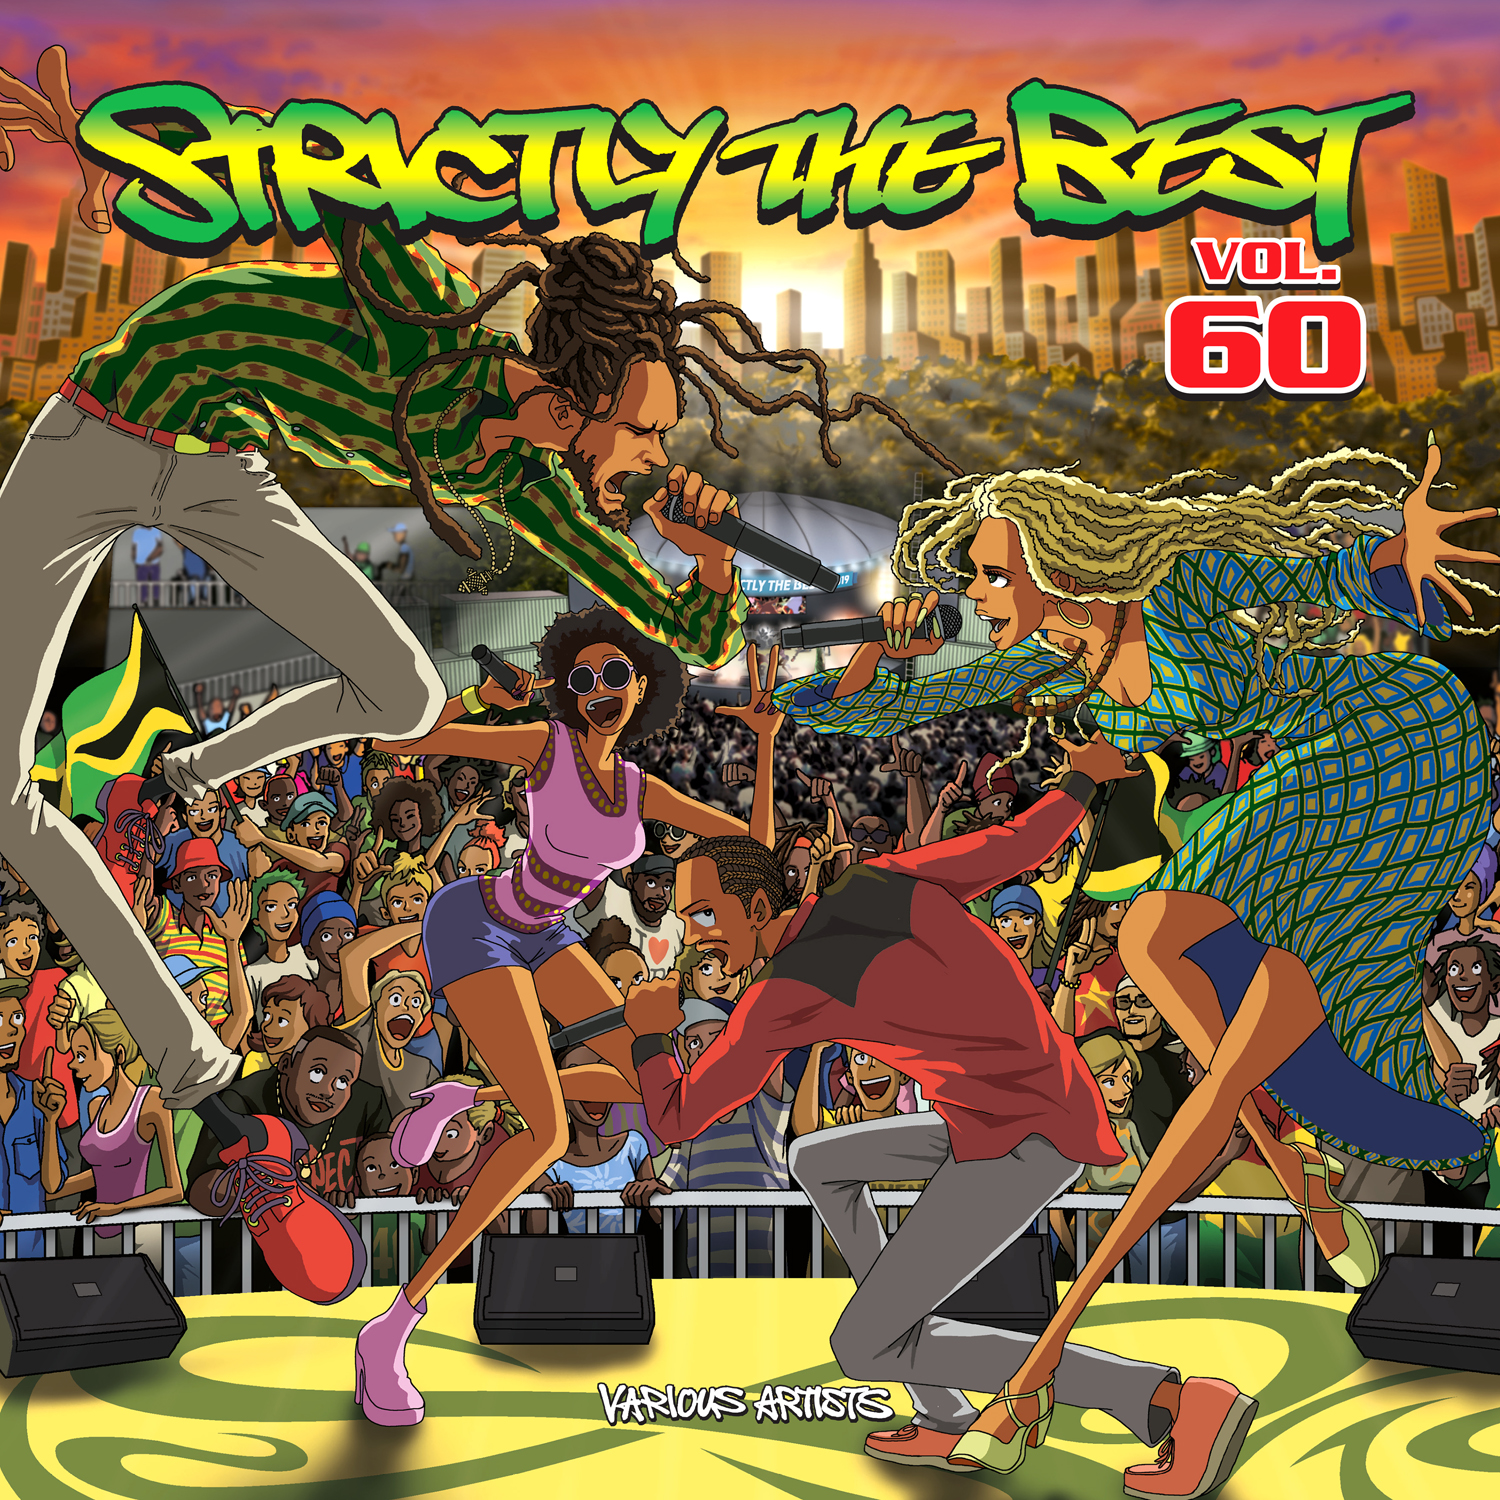 Strictly The Best vol. 60 (2CD Set)